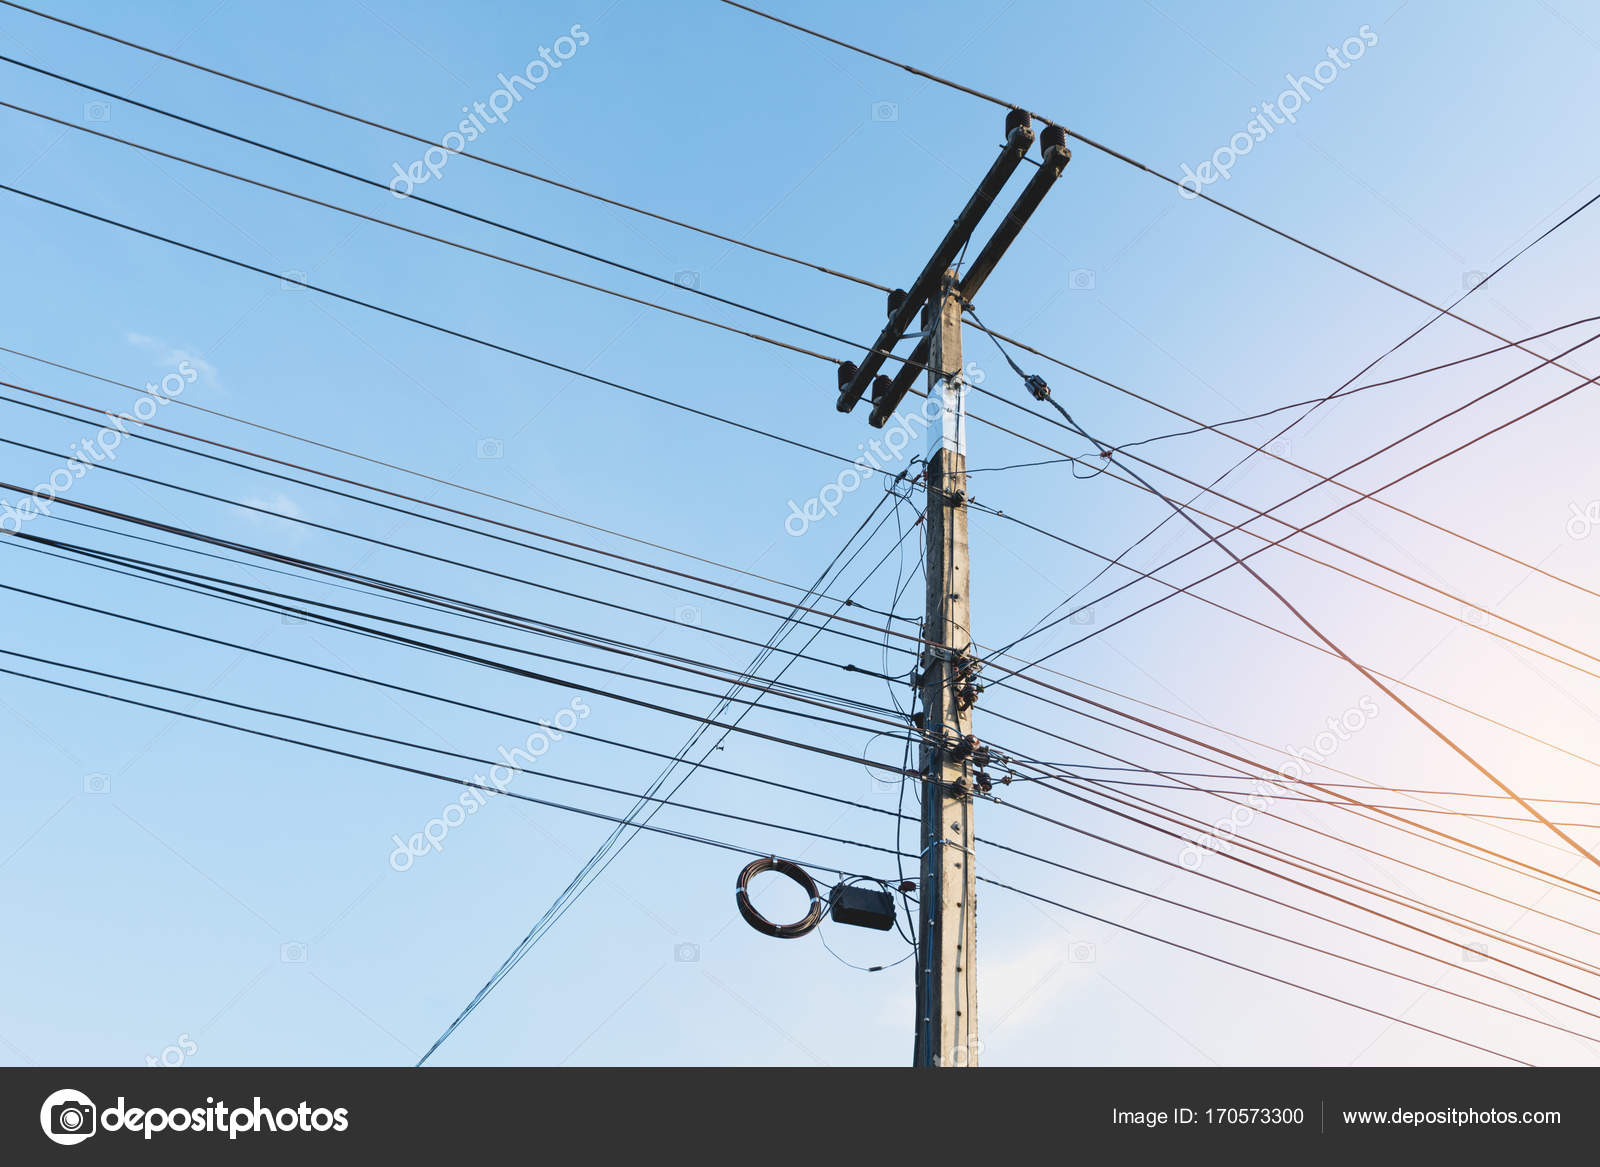 Groovy The Electric Pole With Black Wire Cable And Clear Blue Sky Concrete Wiring Digital Resources Indicompassionincorg